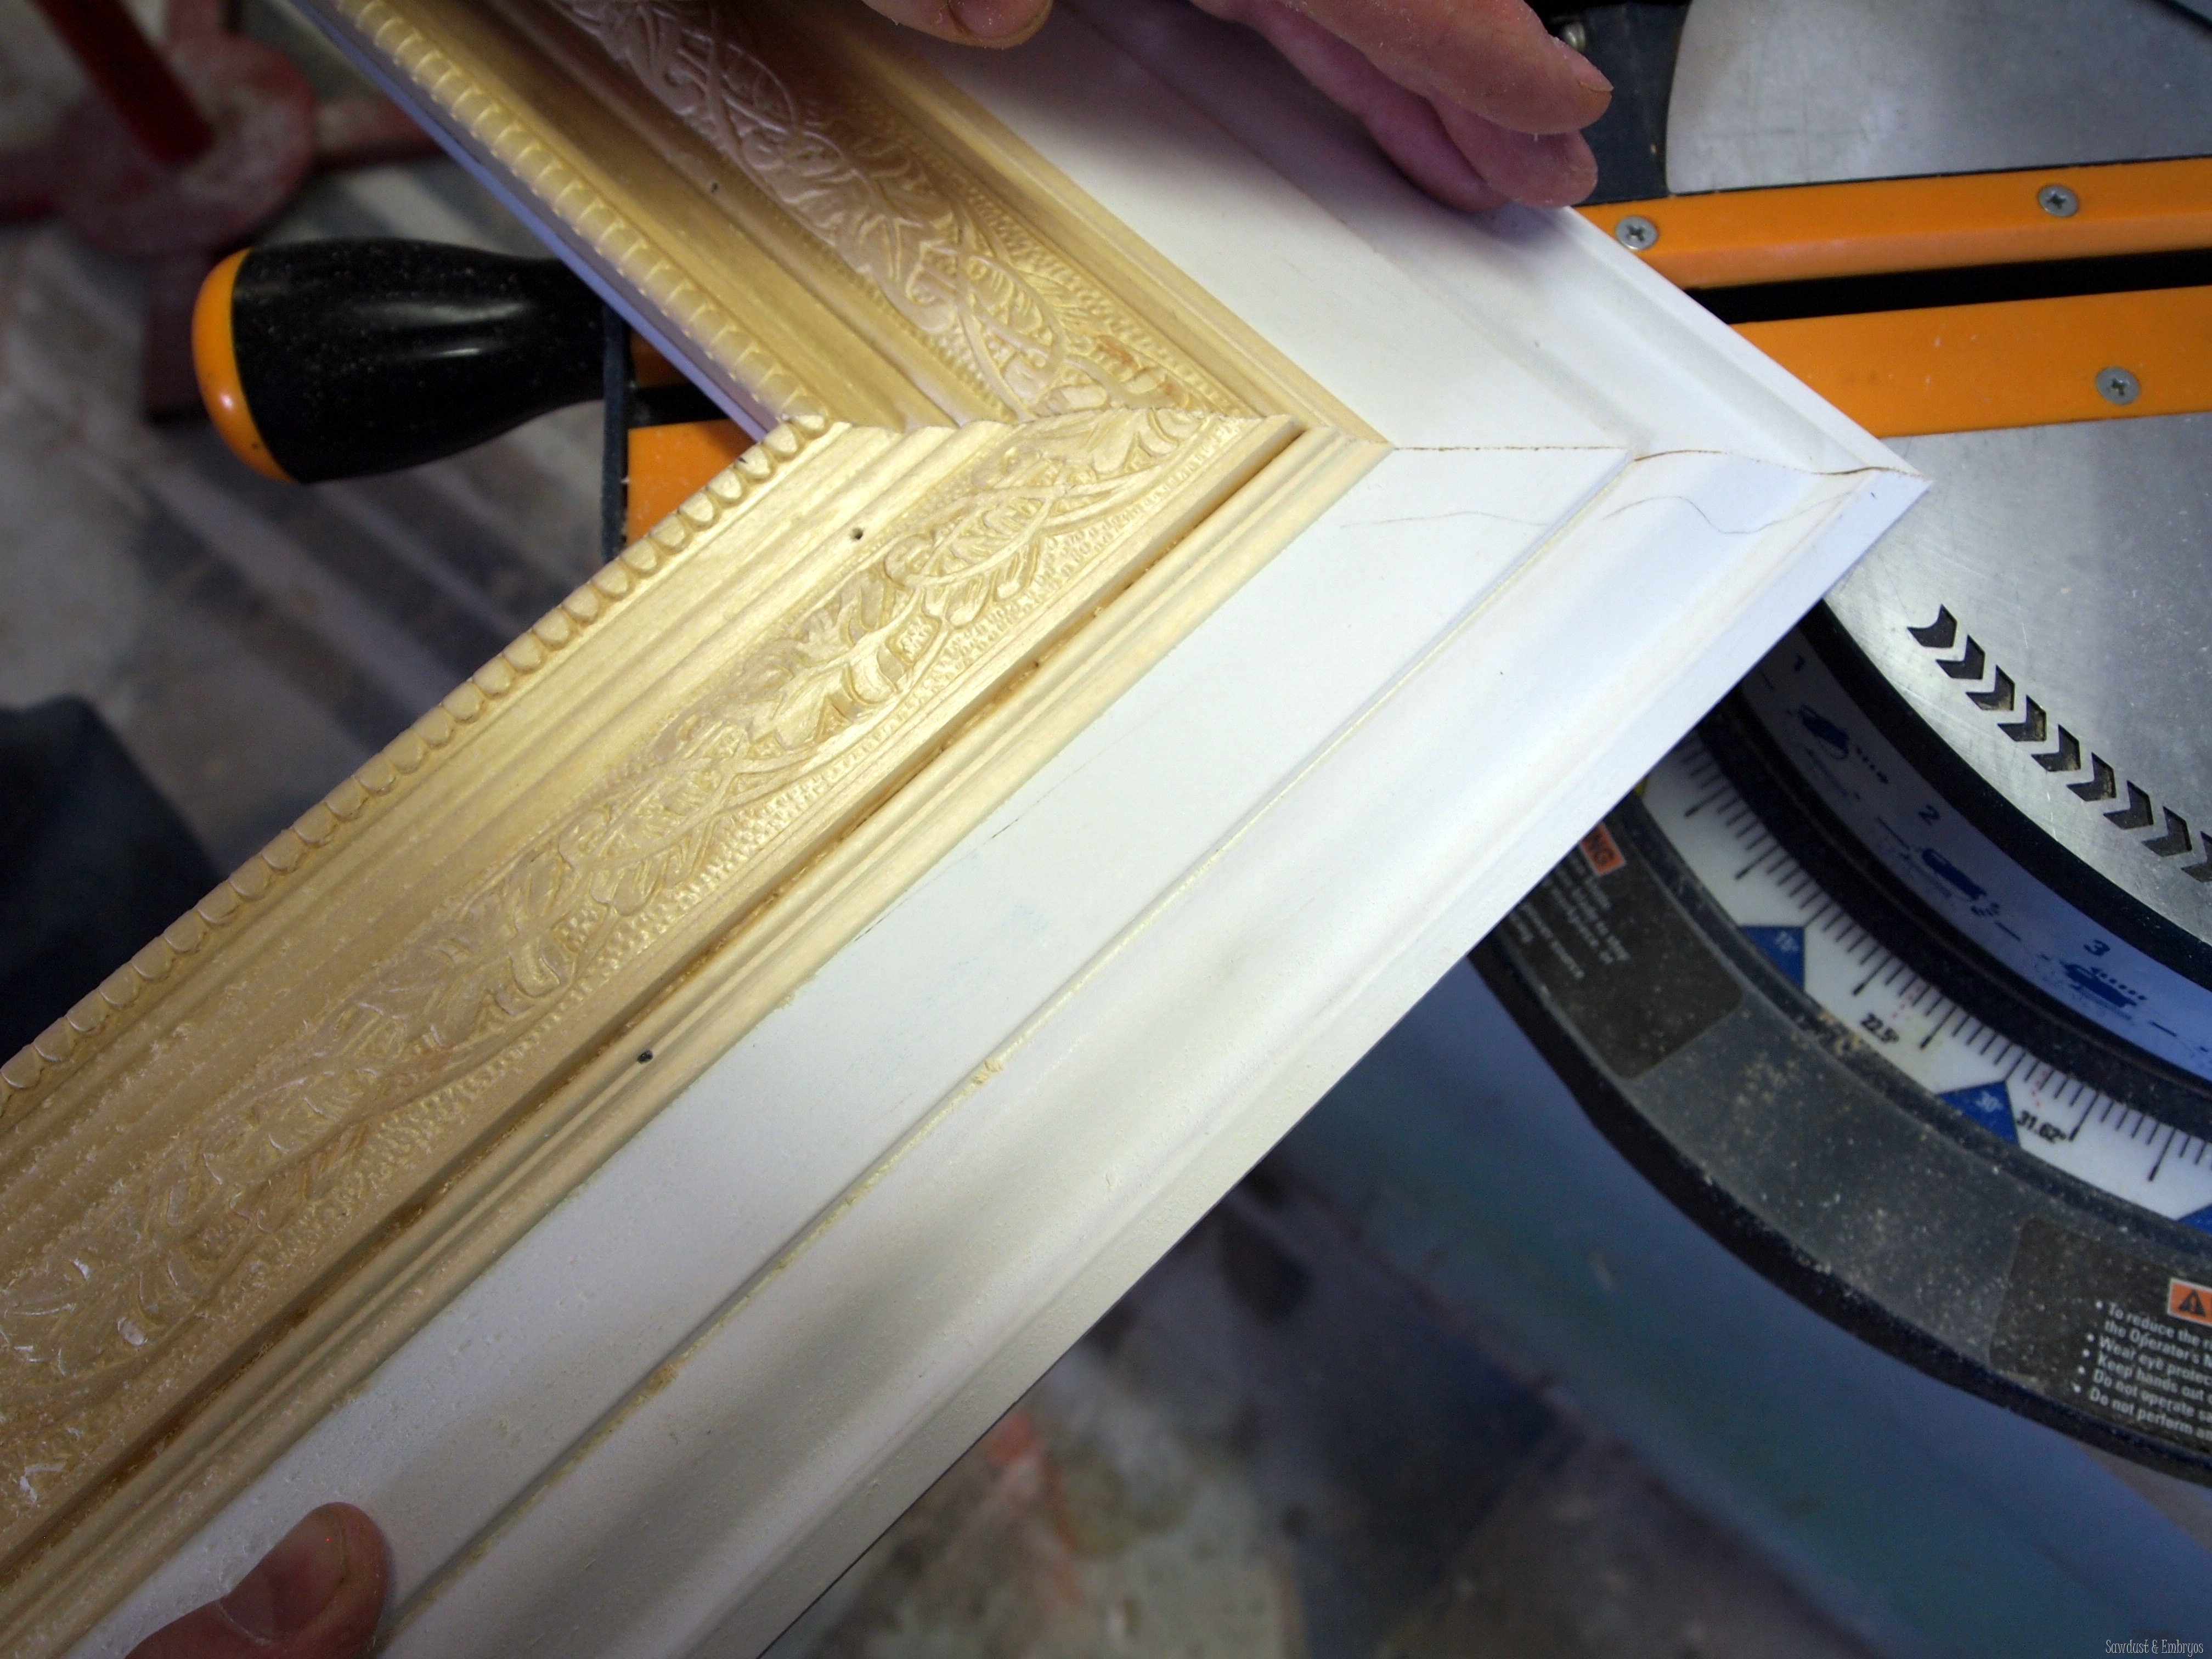 Build a custom frame out of trim pieces reality daydream making a giant picture frame using trim pieces sawdust and embryos jeuxipadfo Choice Image